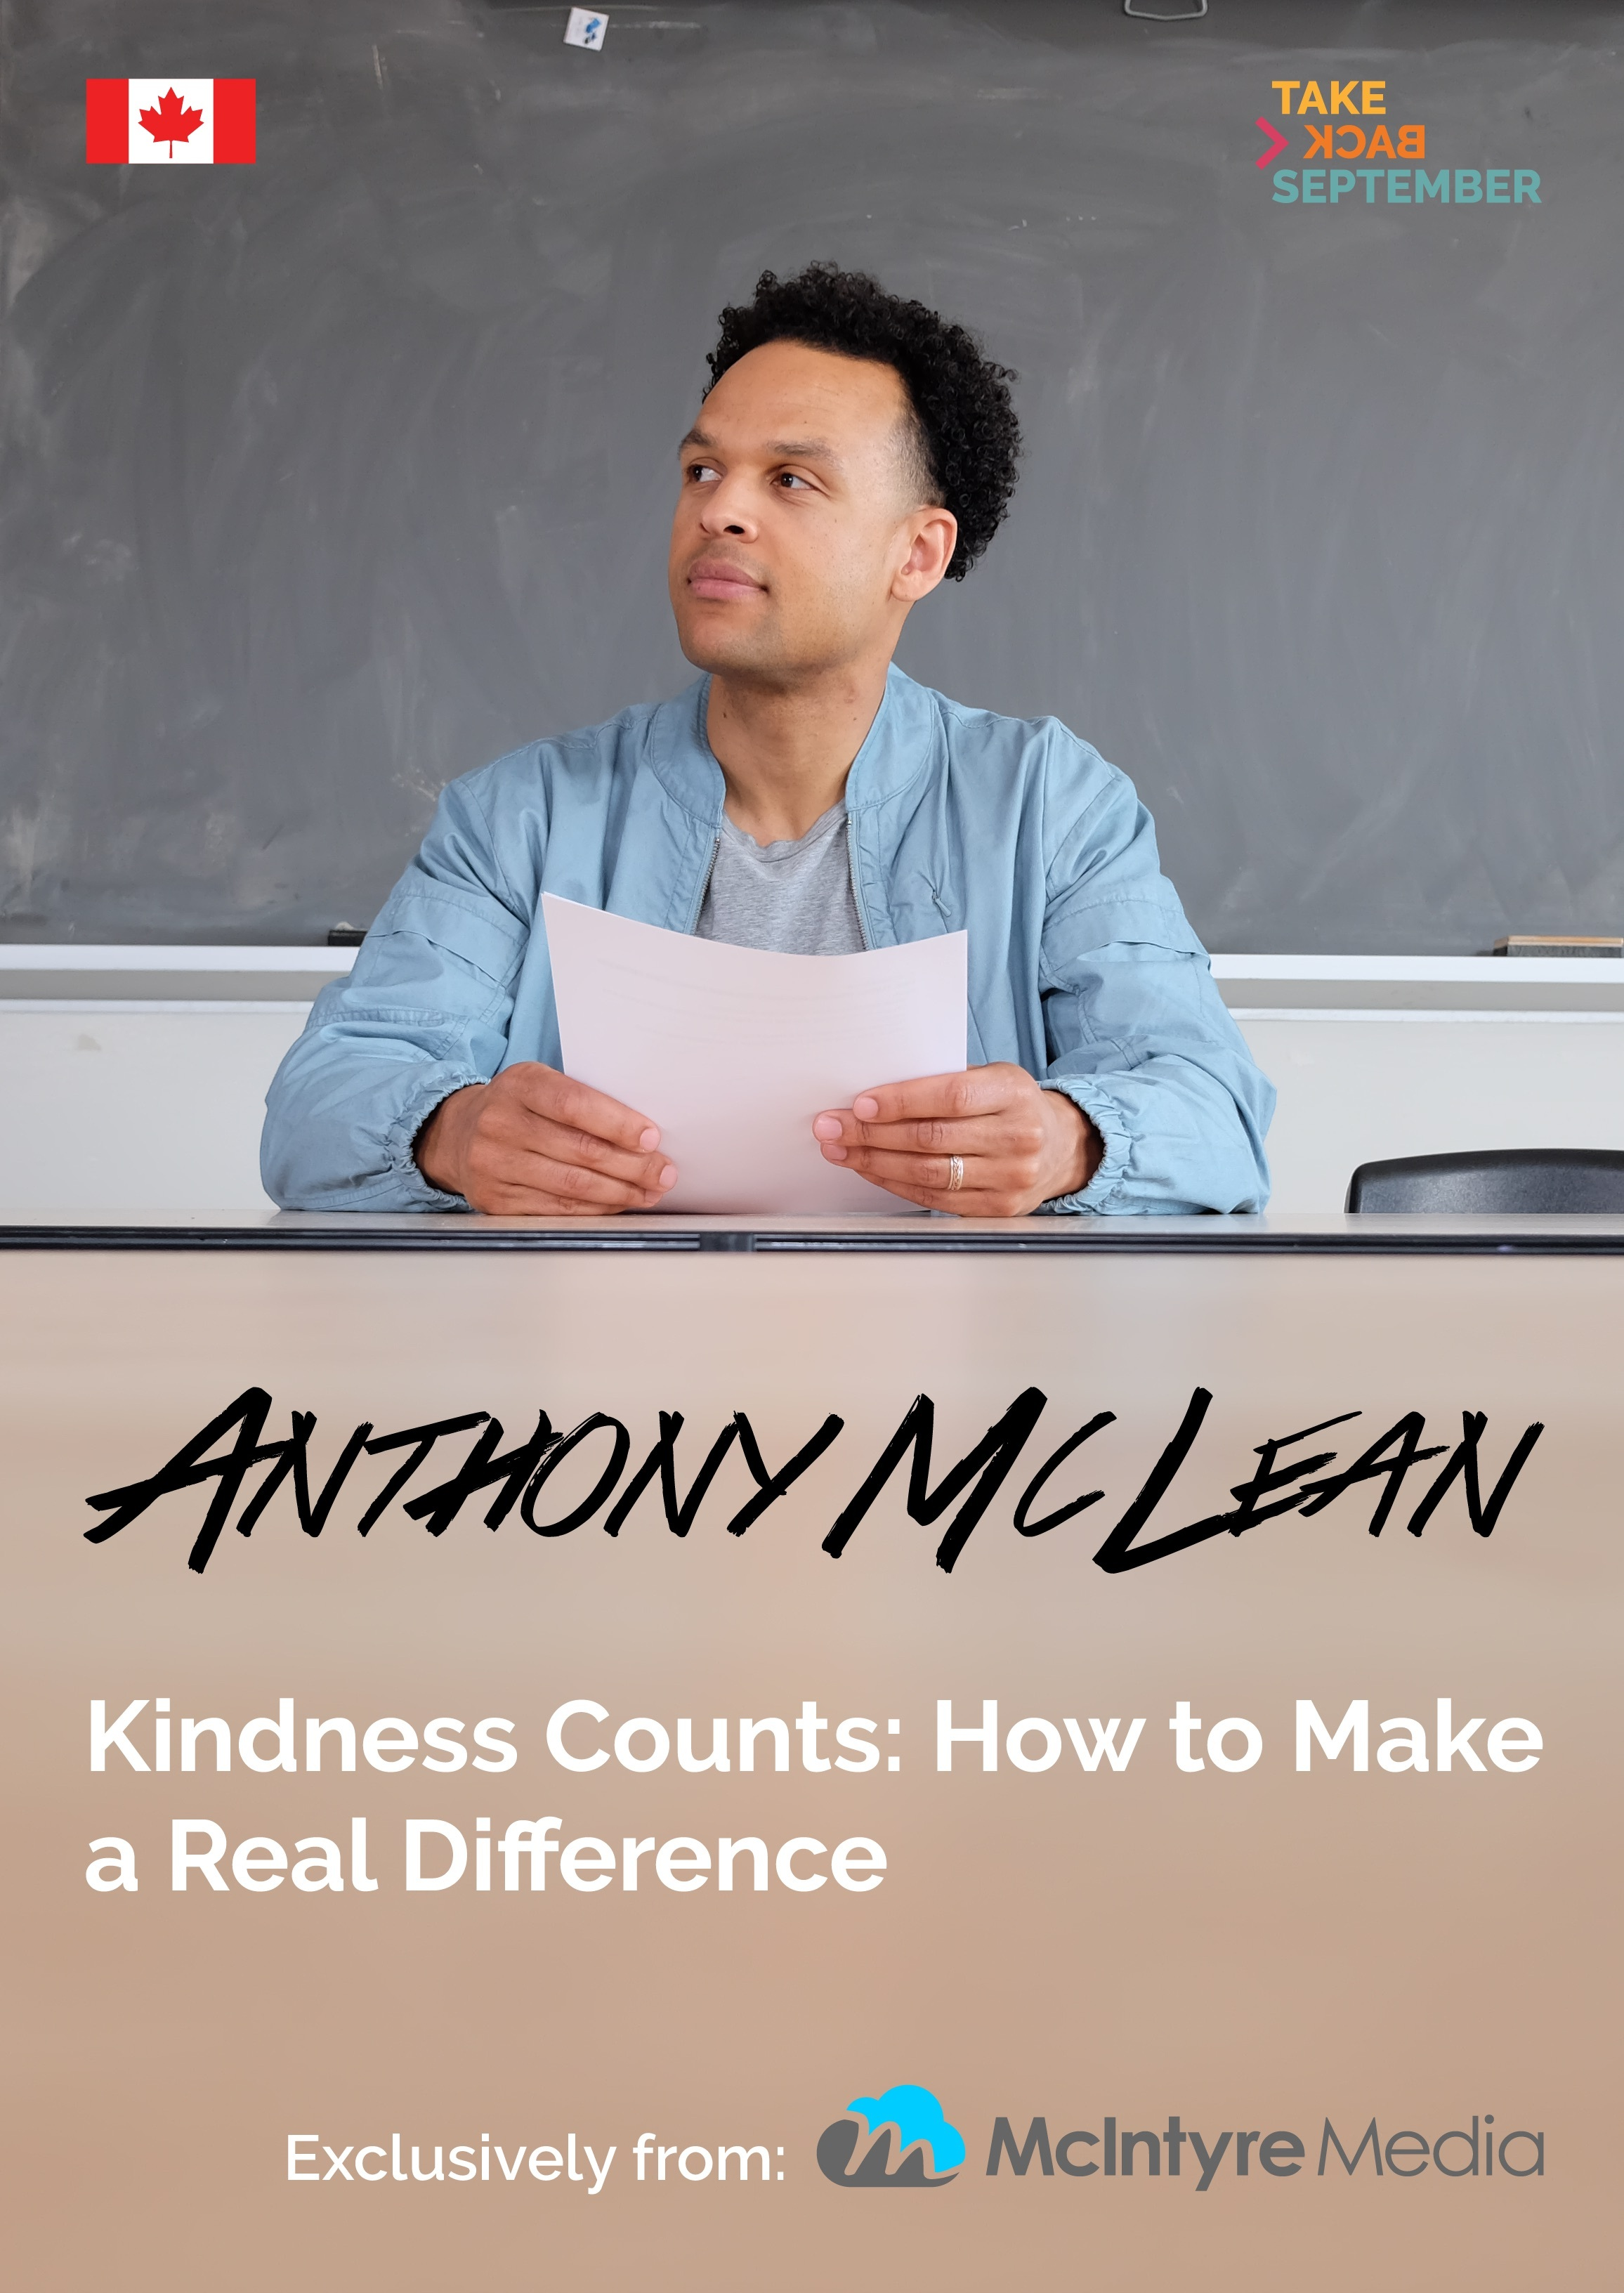 Anthony_McLean_Kindness_Counts_McIntyre.jpg